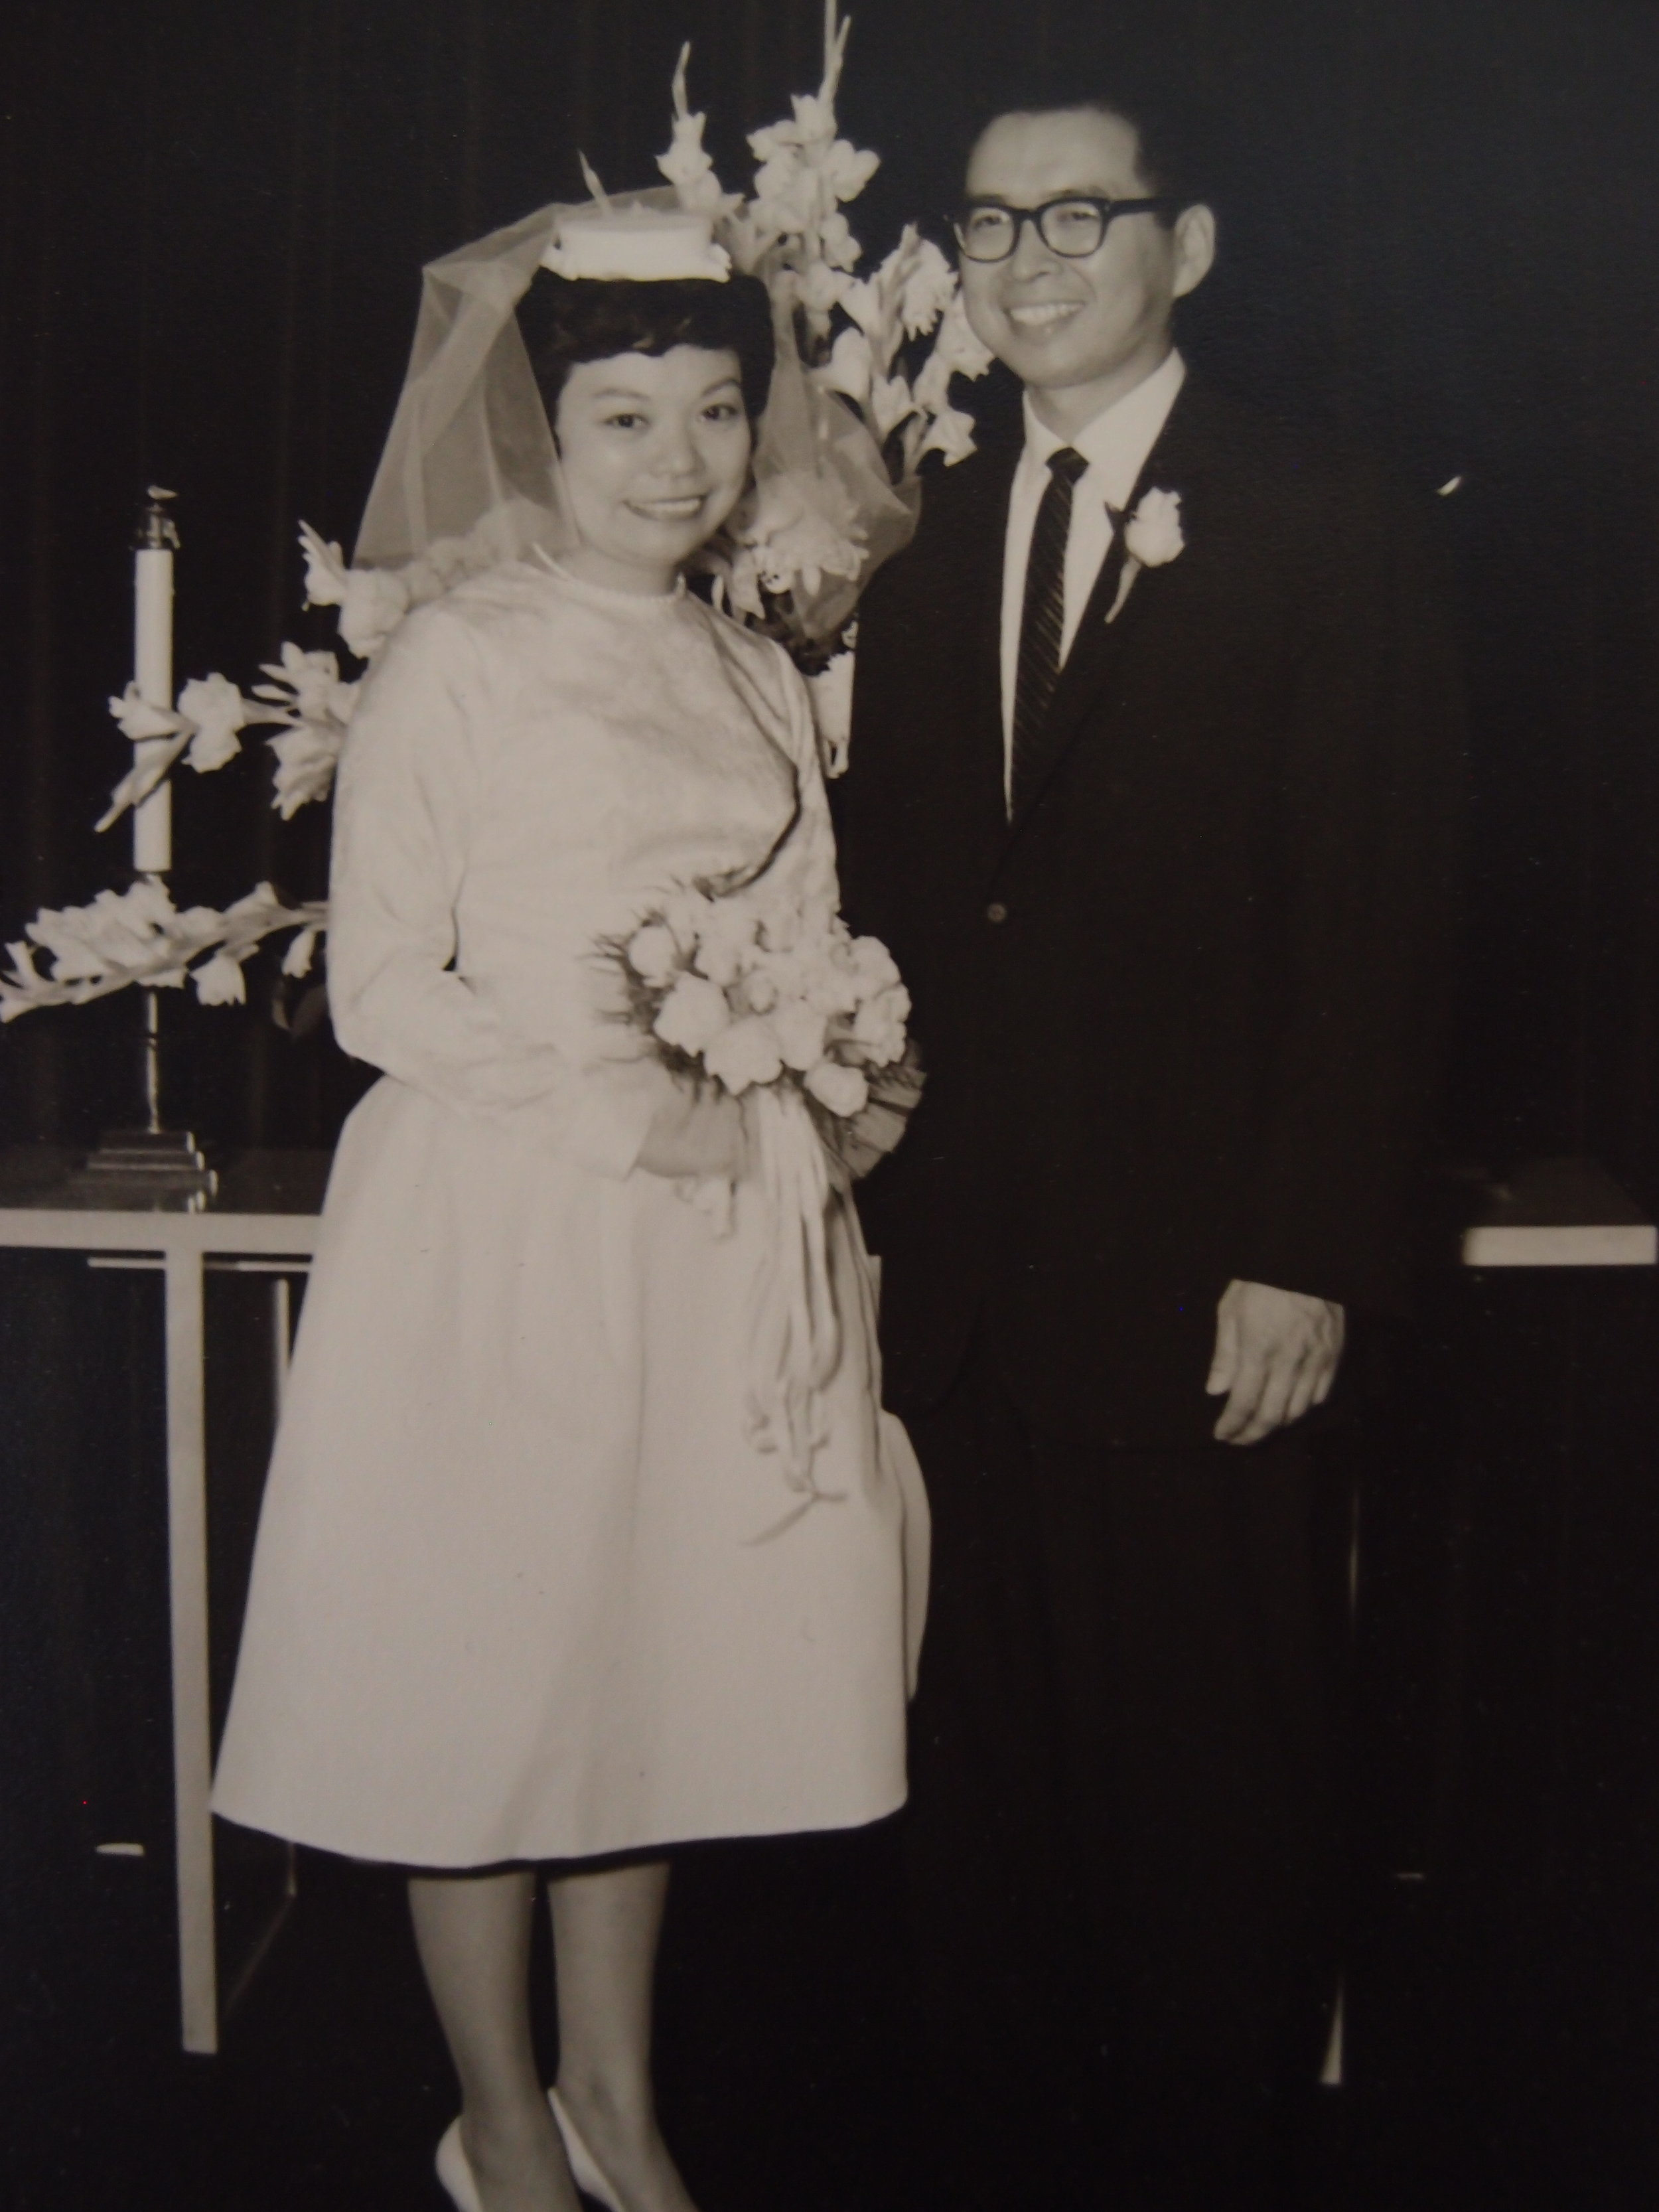 Ann and Konito Sato on their wedding day. He worked for the Dial Corporation, formerly Armour and Company.